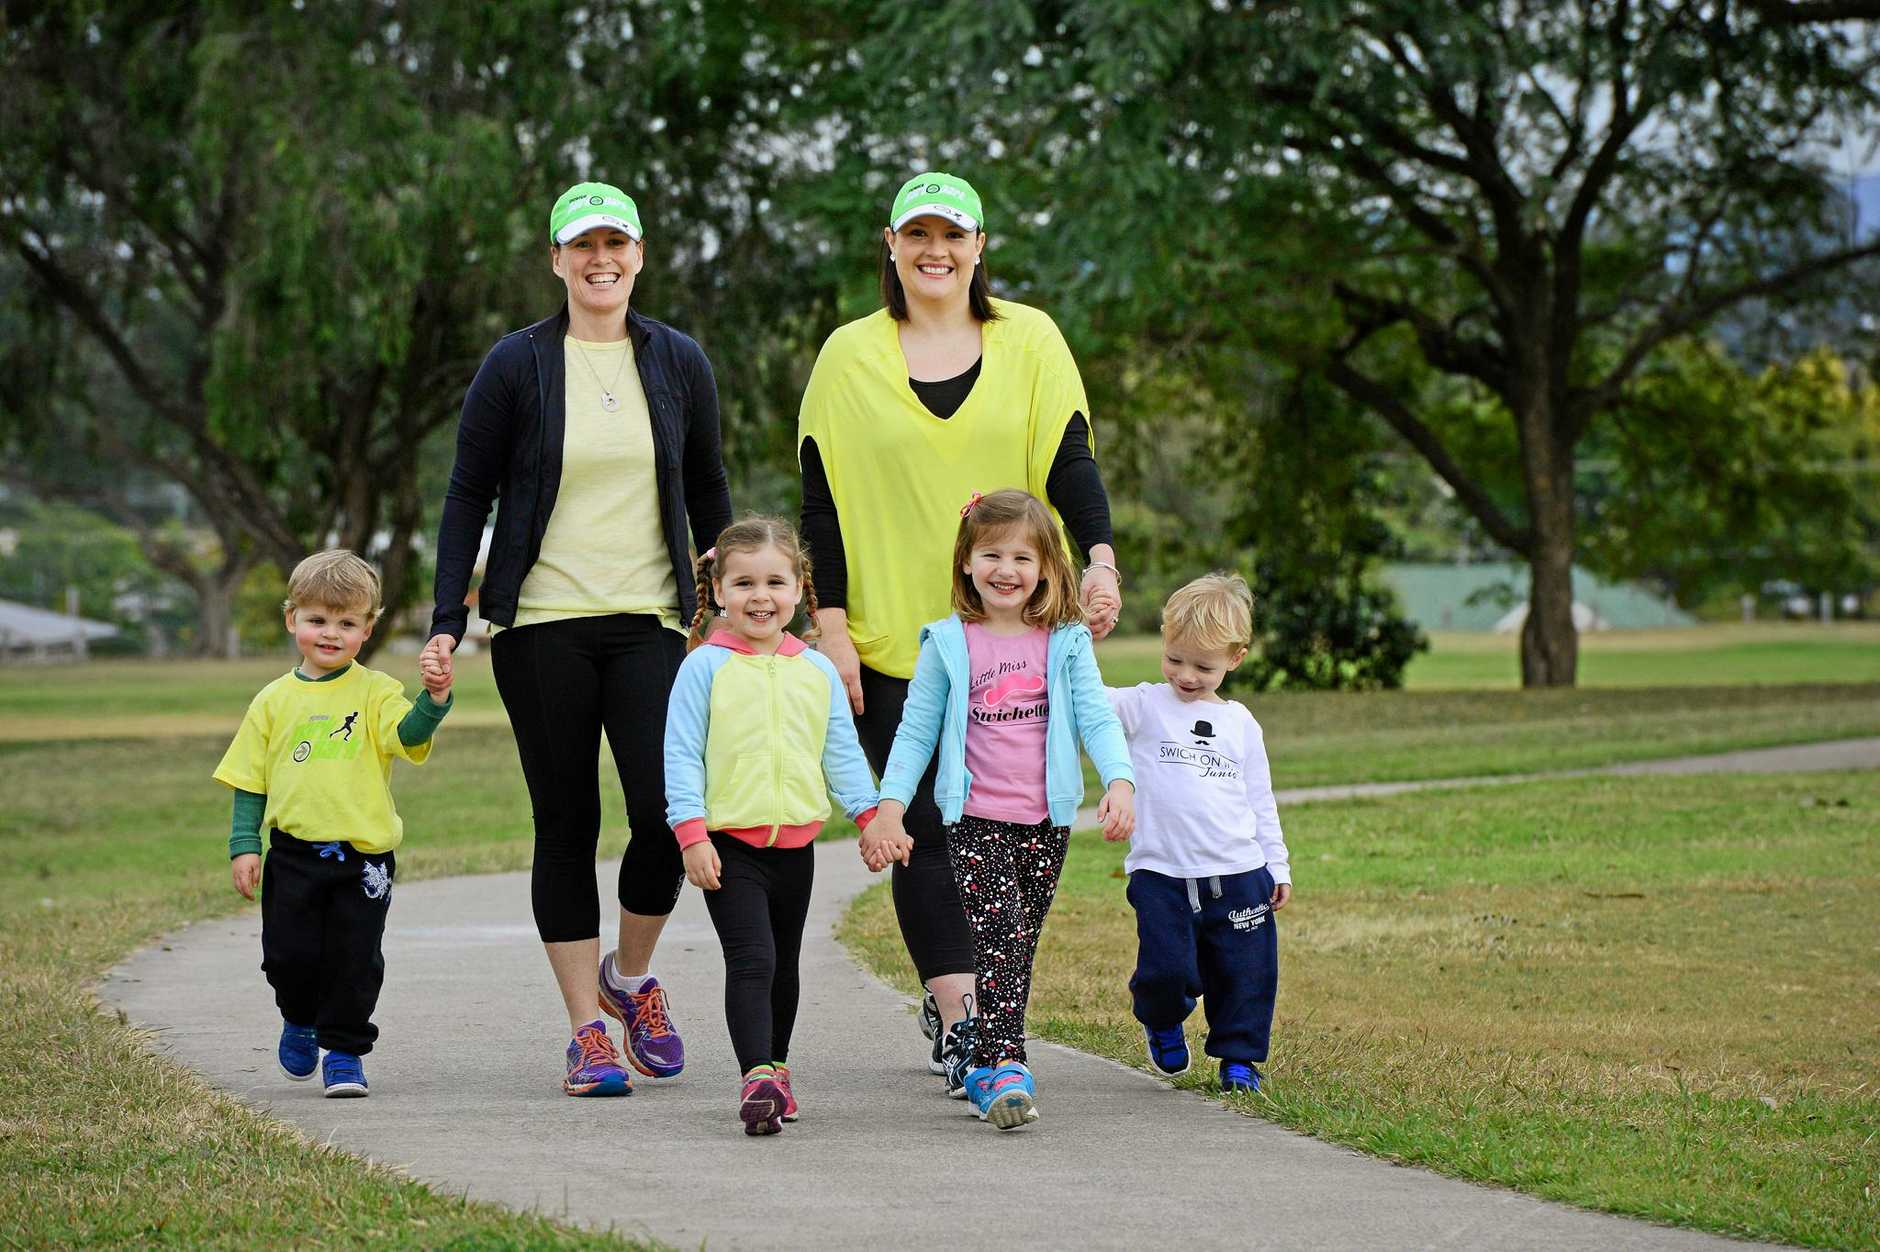 Members of the 'Swtichsweats' Park 2 Park team Anne-Maree Savige (left) and Karlie Bulow with children from left, Tommy Savige (2), Isabel Savige (4), Georgia Bulow (4) and Darcy Bulow (2). Photo: David Nielsen / The Queensland Times